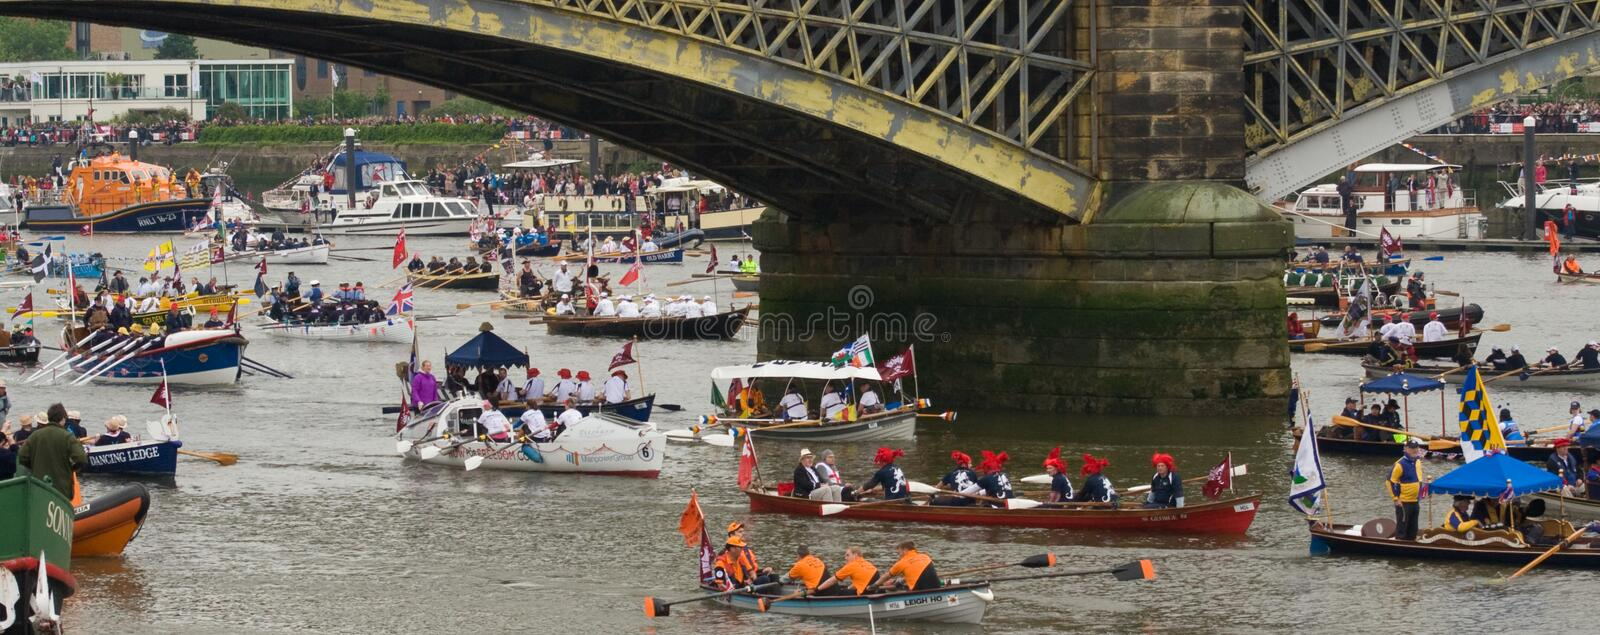 The Human Power Boats At The Royal Pageant Editorial Stock Image